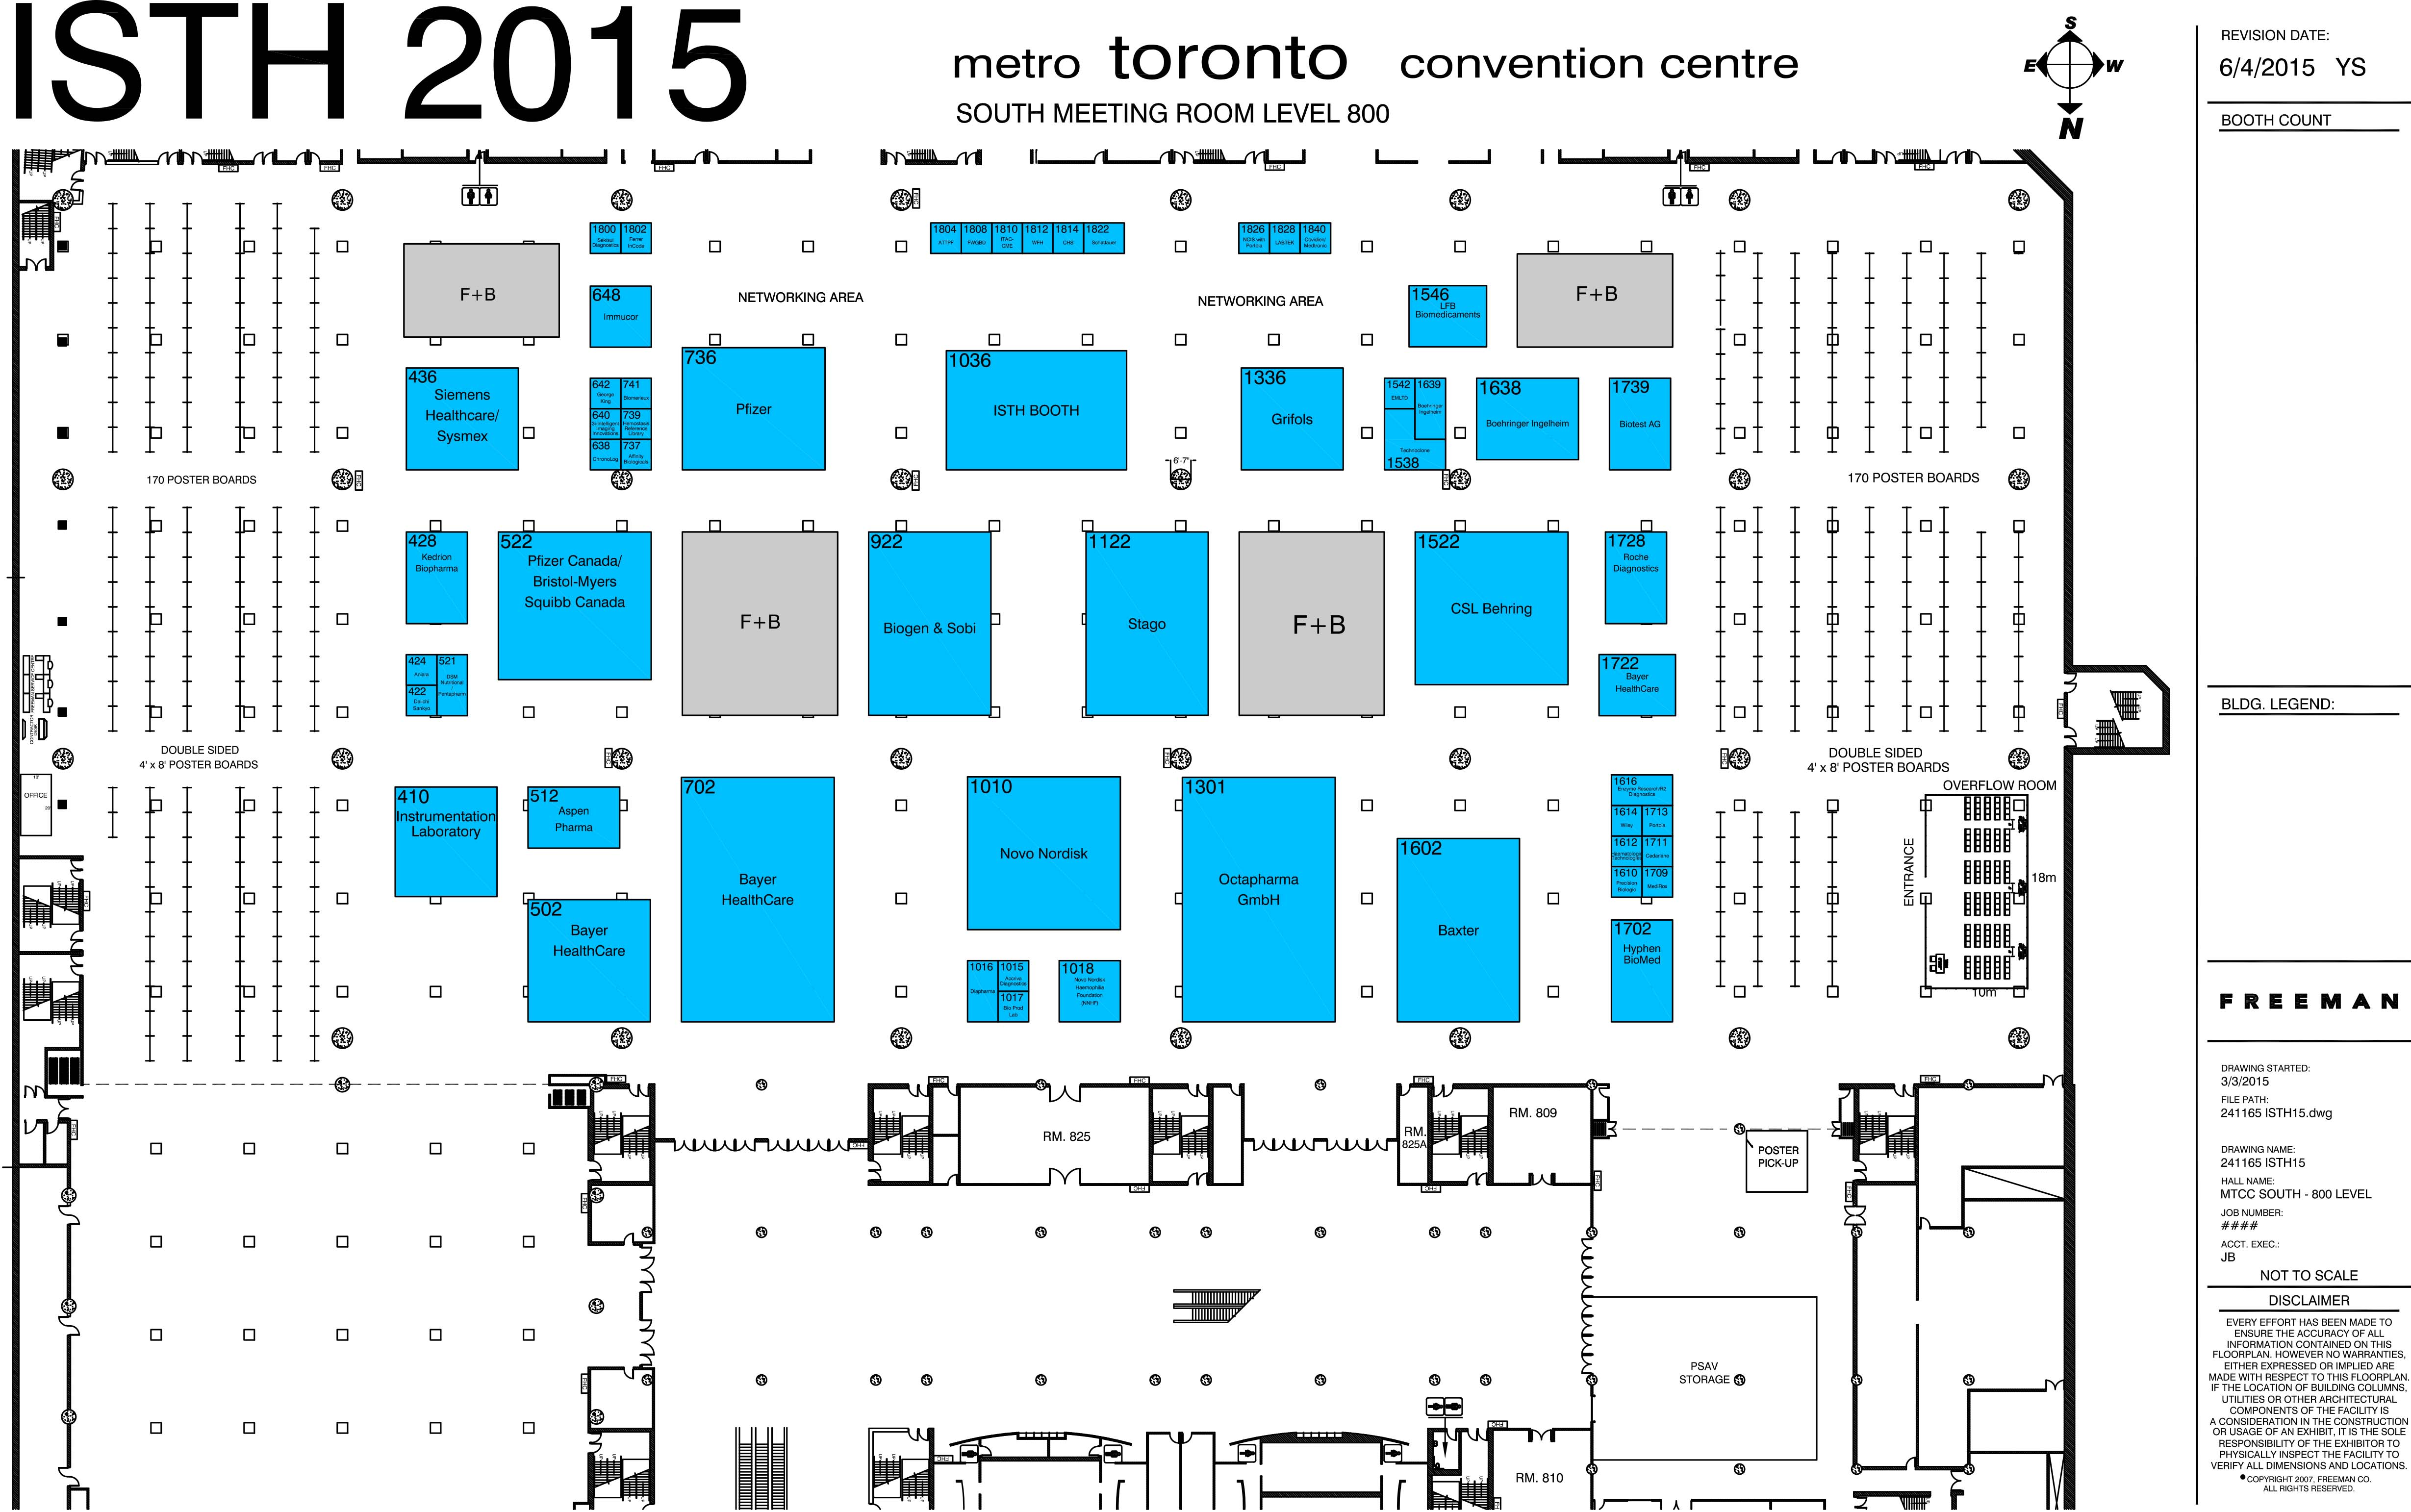 2015 floor plan international society on thrombosis and access the isth 2015 exhibition floor plan online here